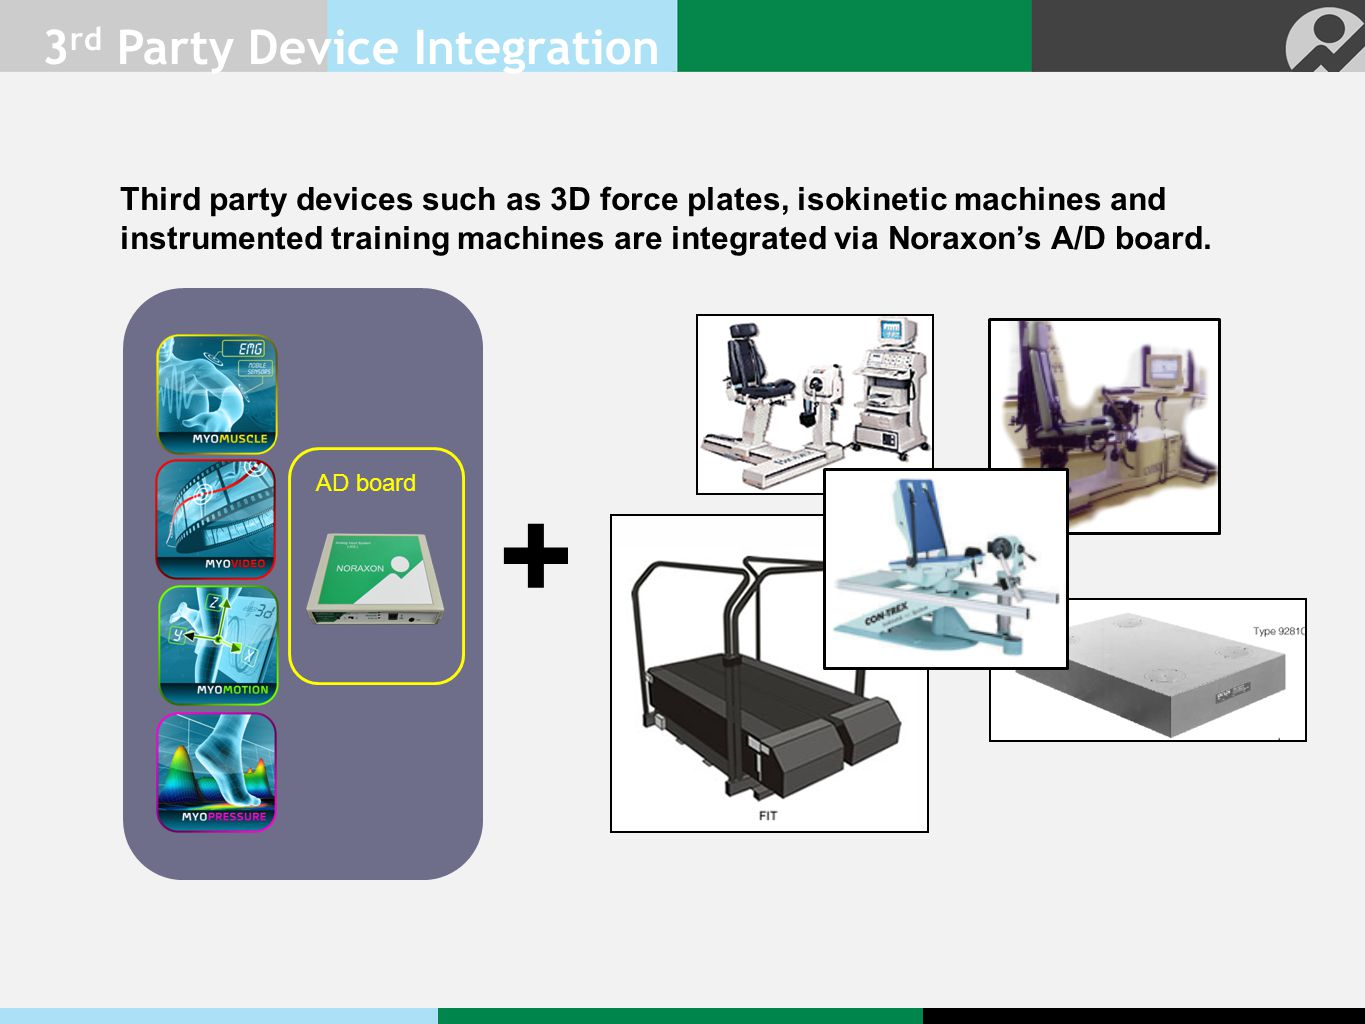 Master Sync Concept Each integrated device is accurately time synchronized via MR3s Master sync system using a physical sync TTL scheme Master-Sync Device sync out Multi-device component 1 Multi-device component 2 Multi-device component 3 Third party sync out/in Manual start cable MR3 device family